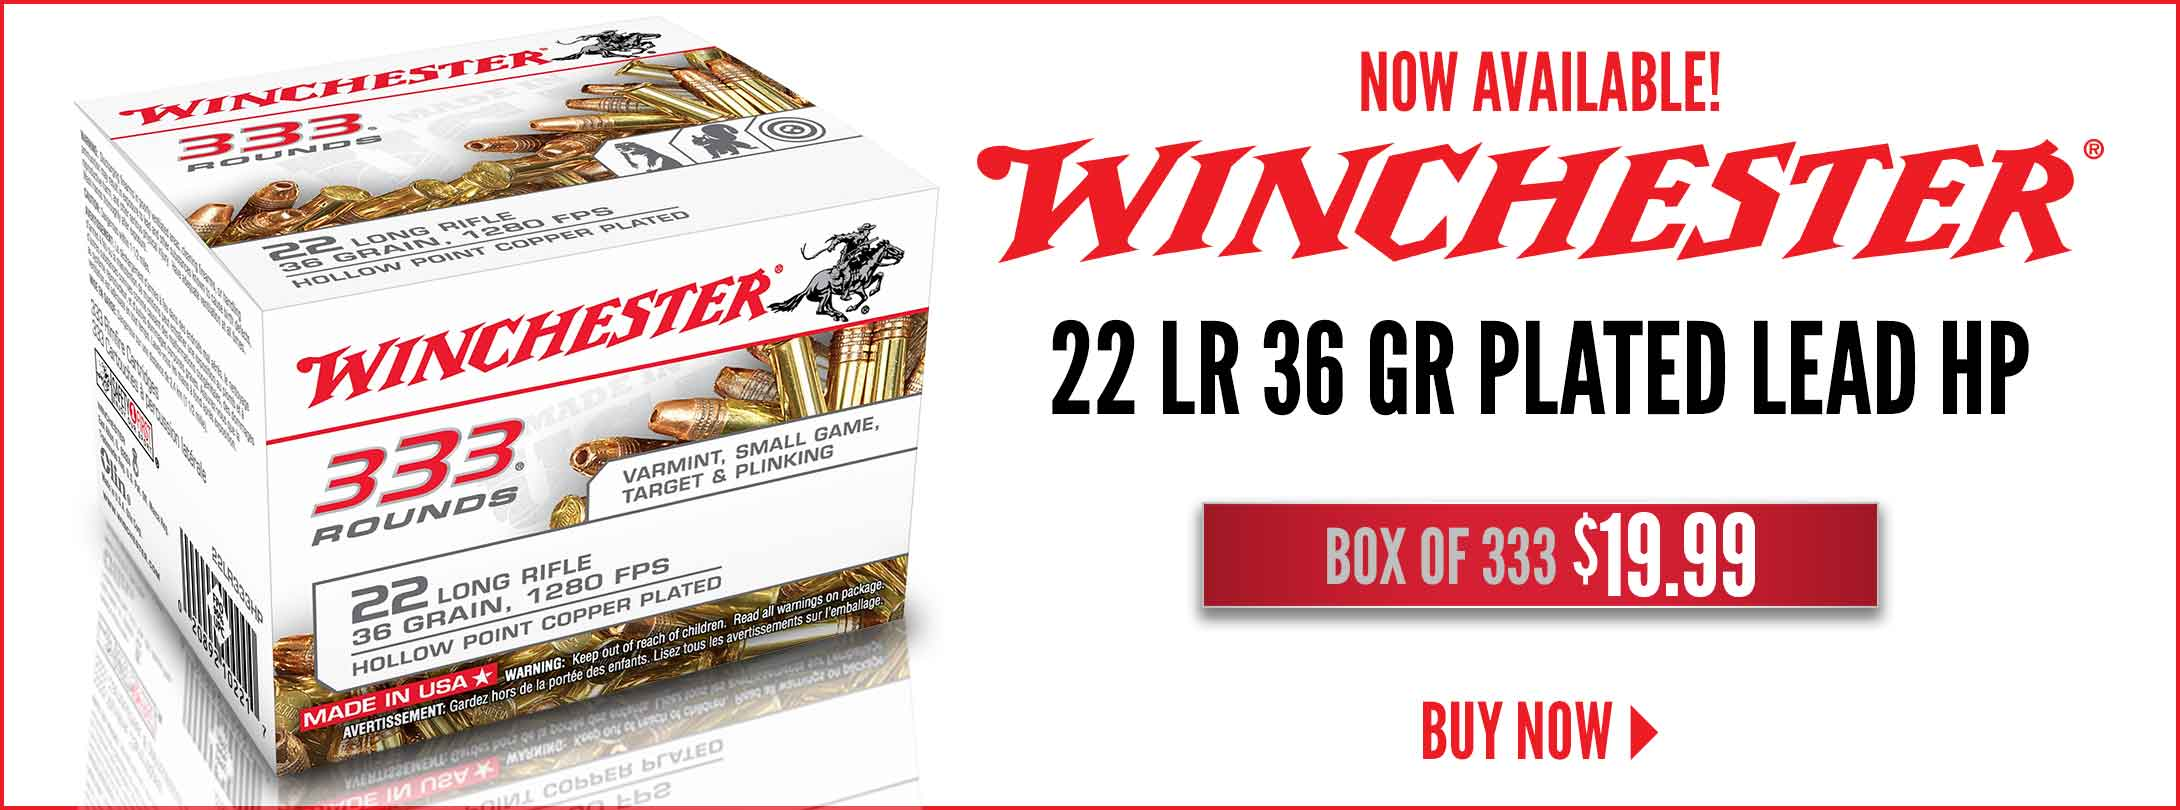 Winchester 333 Box of 22 LR Now Available!